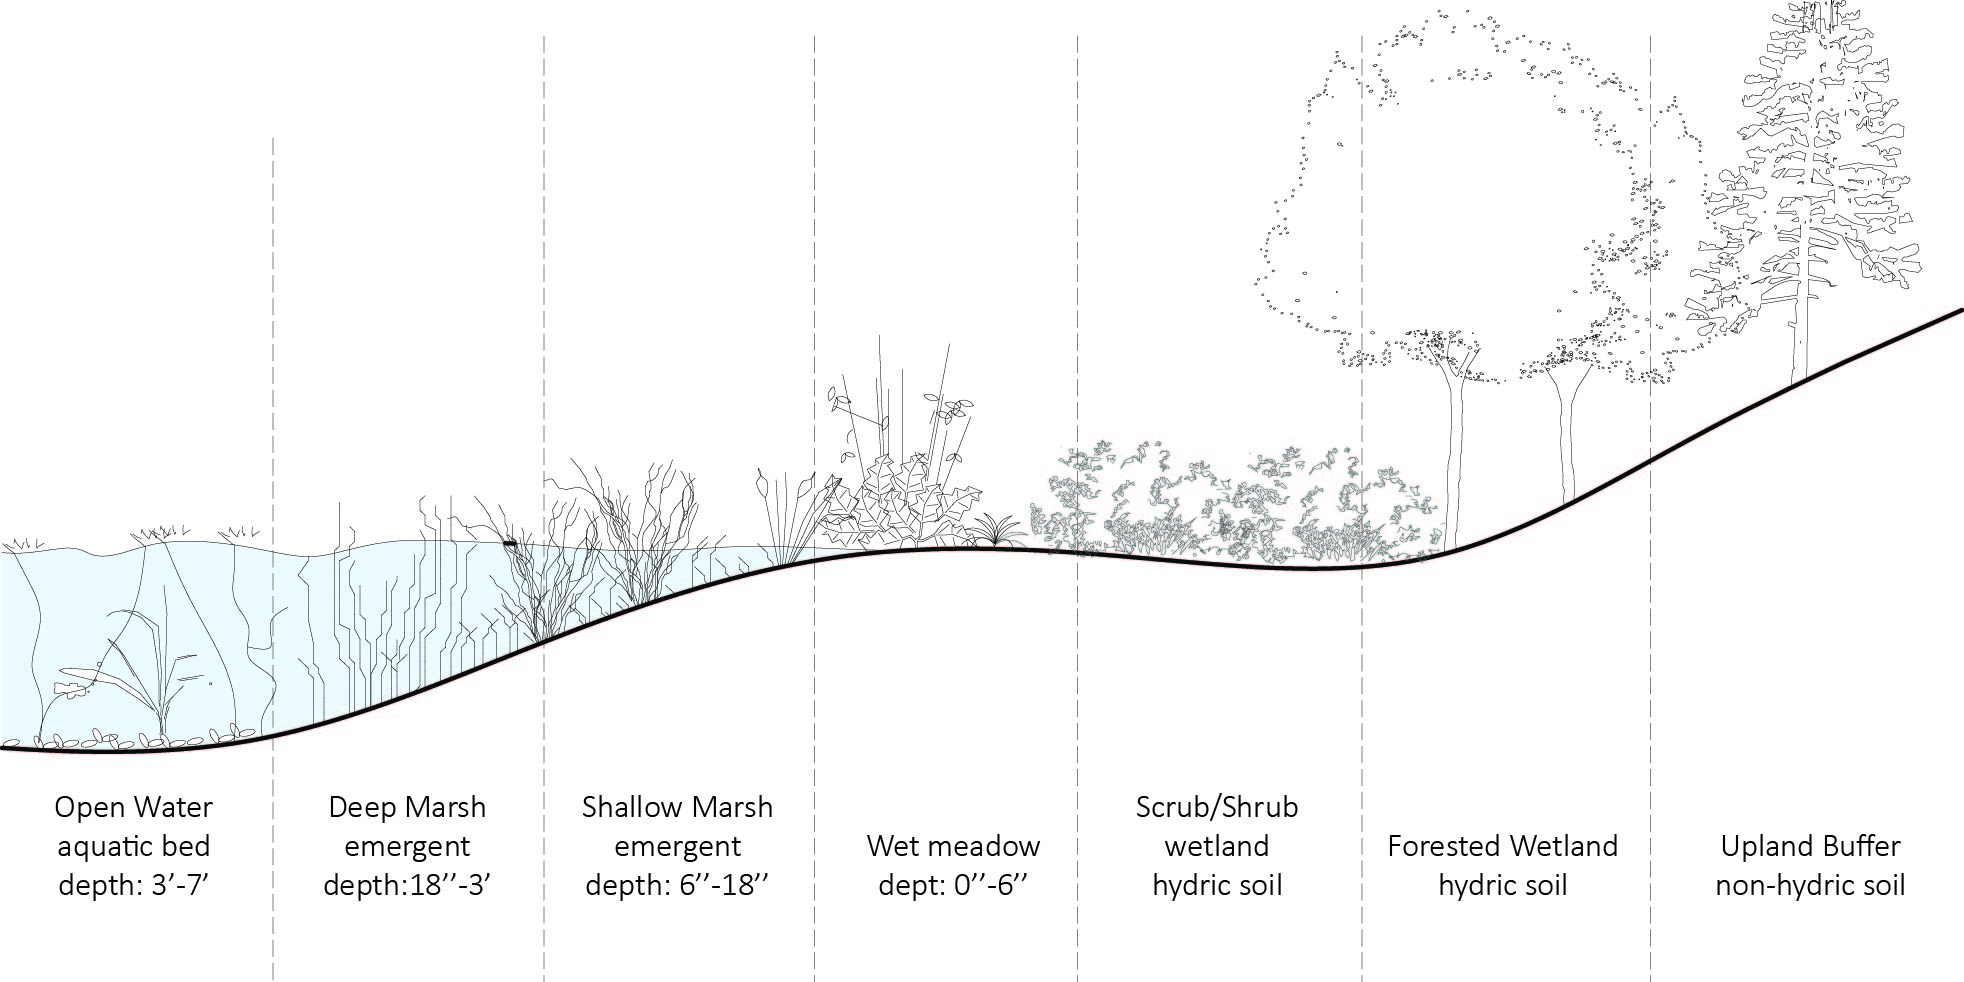 Picture of the Natural Ecology of the Site based on elevation